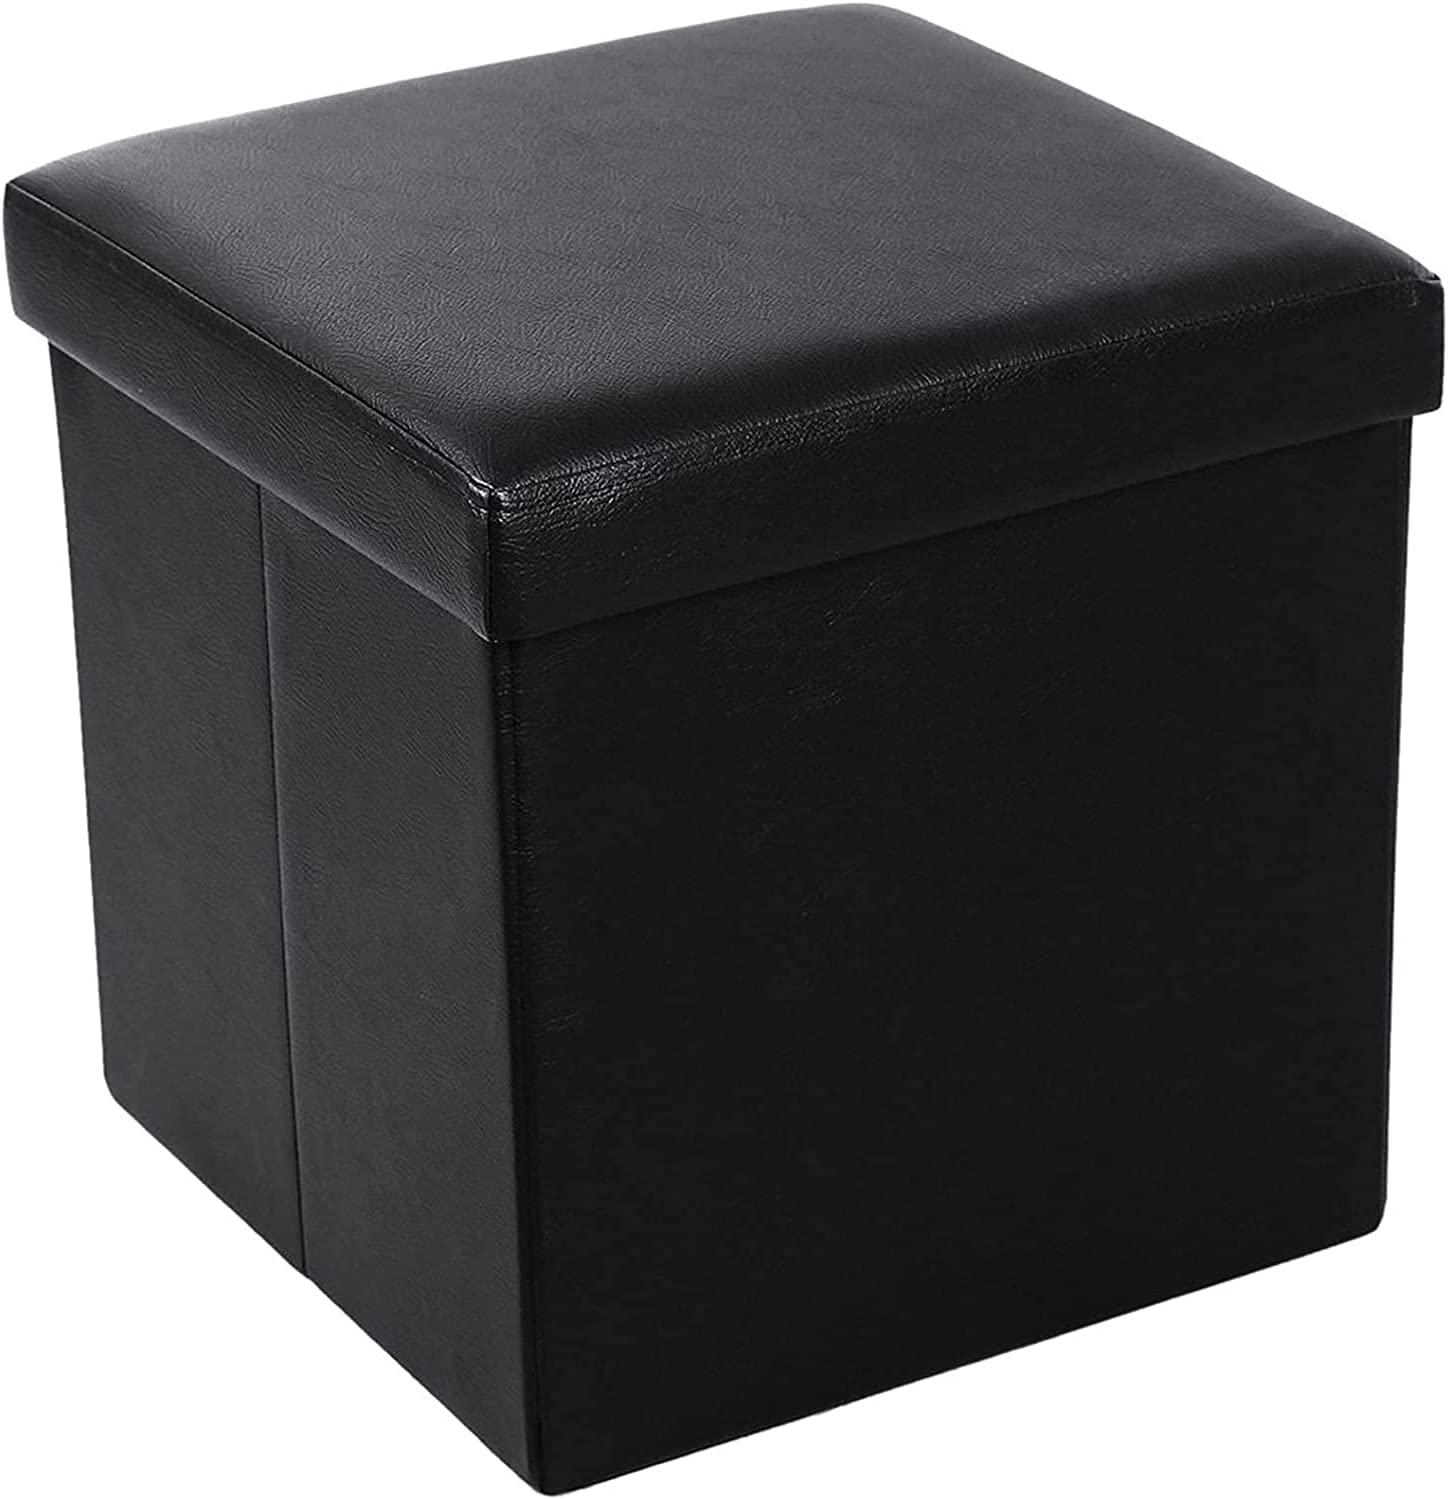 HDHUIXS Concentrating PU Dedication Time sale Leather 38x38x38 Black Smooth Footstool